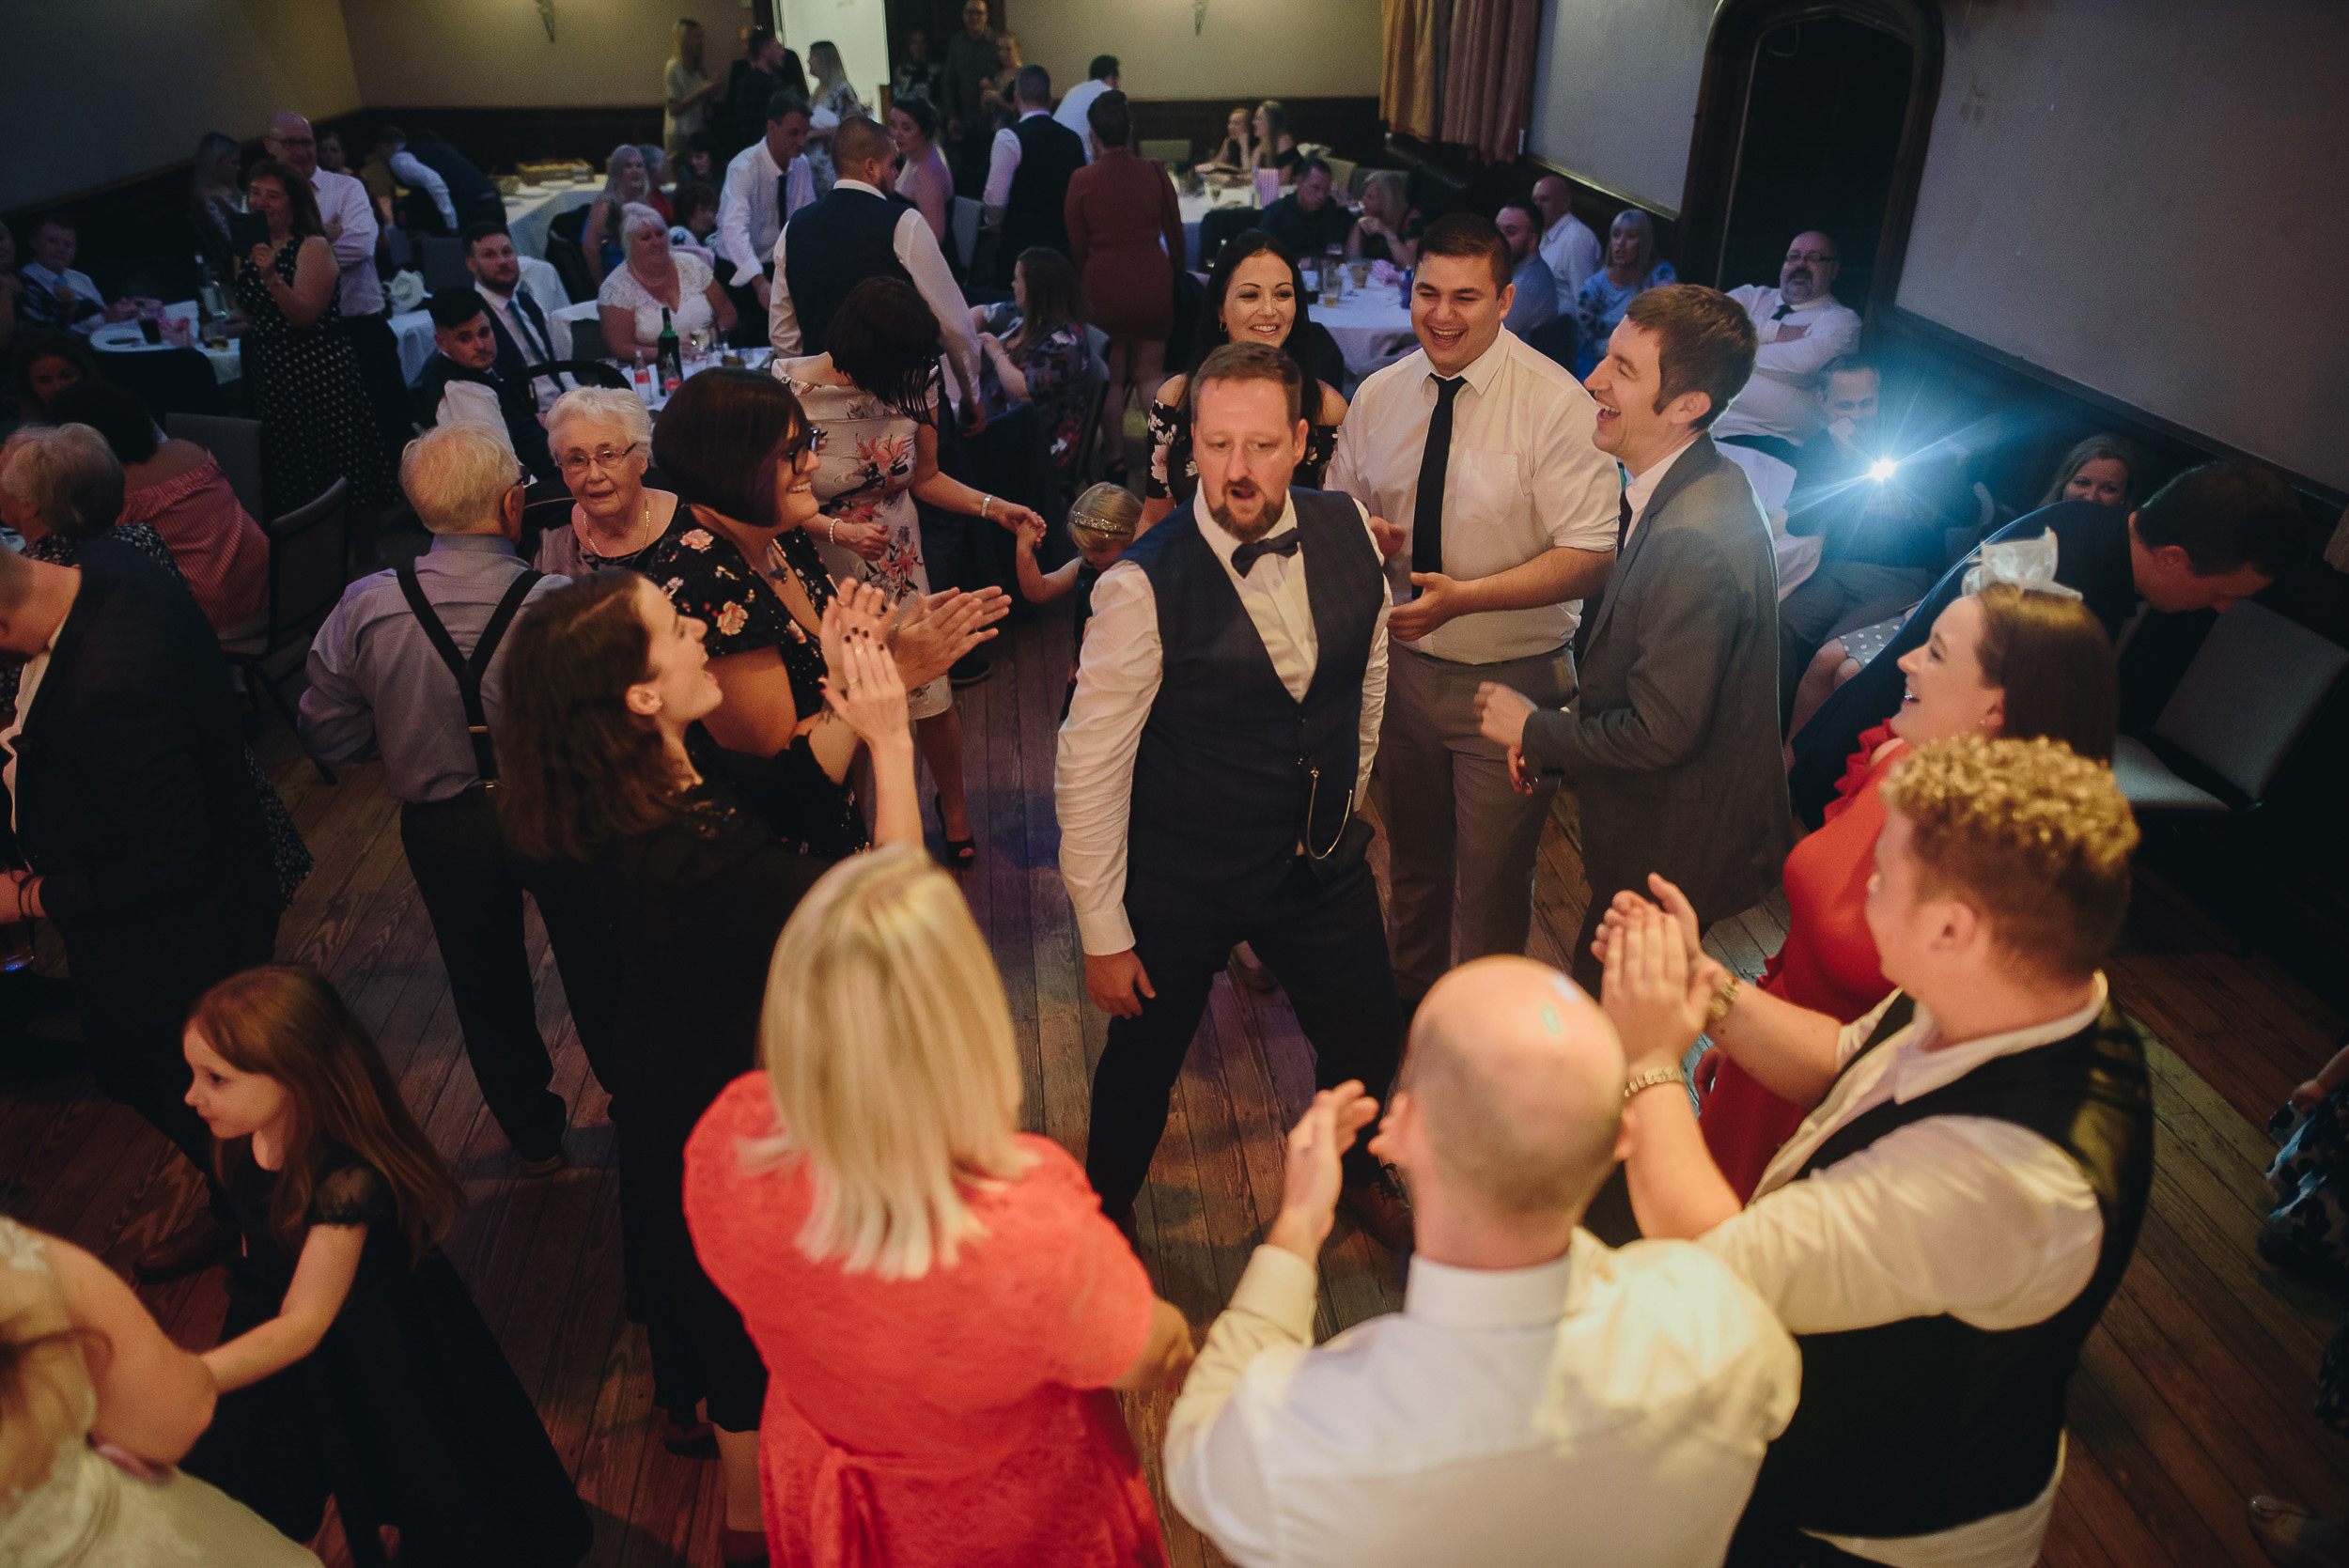 Smithills-hall-wedding-manchester-the-barlow-edgworth-hadfield-128.jpg